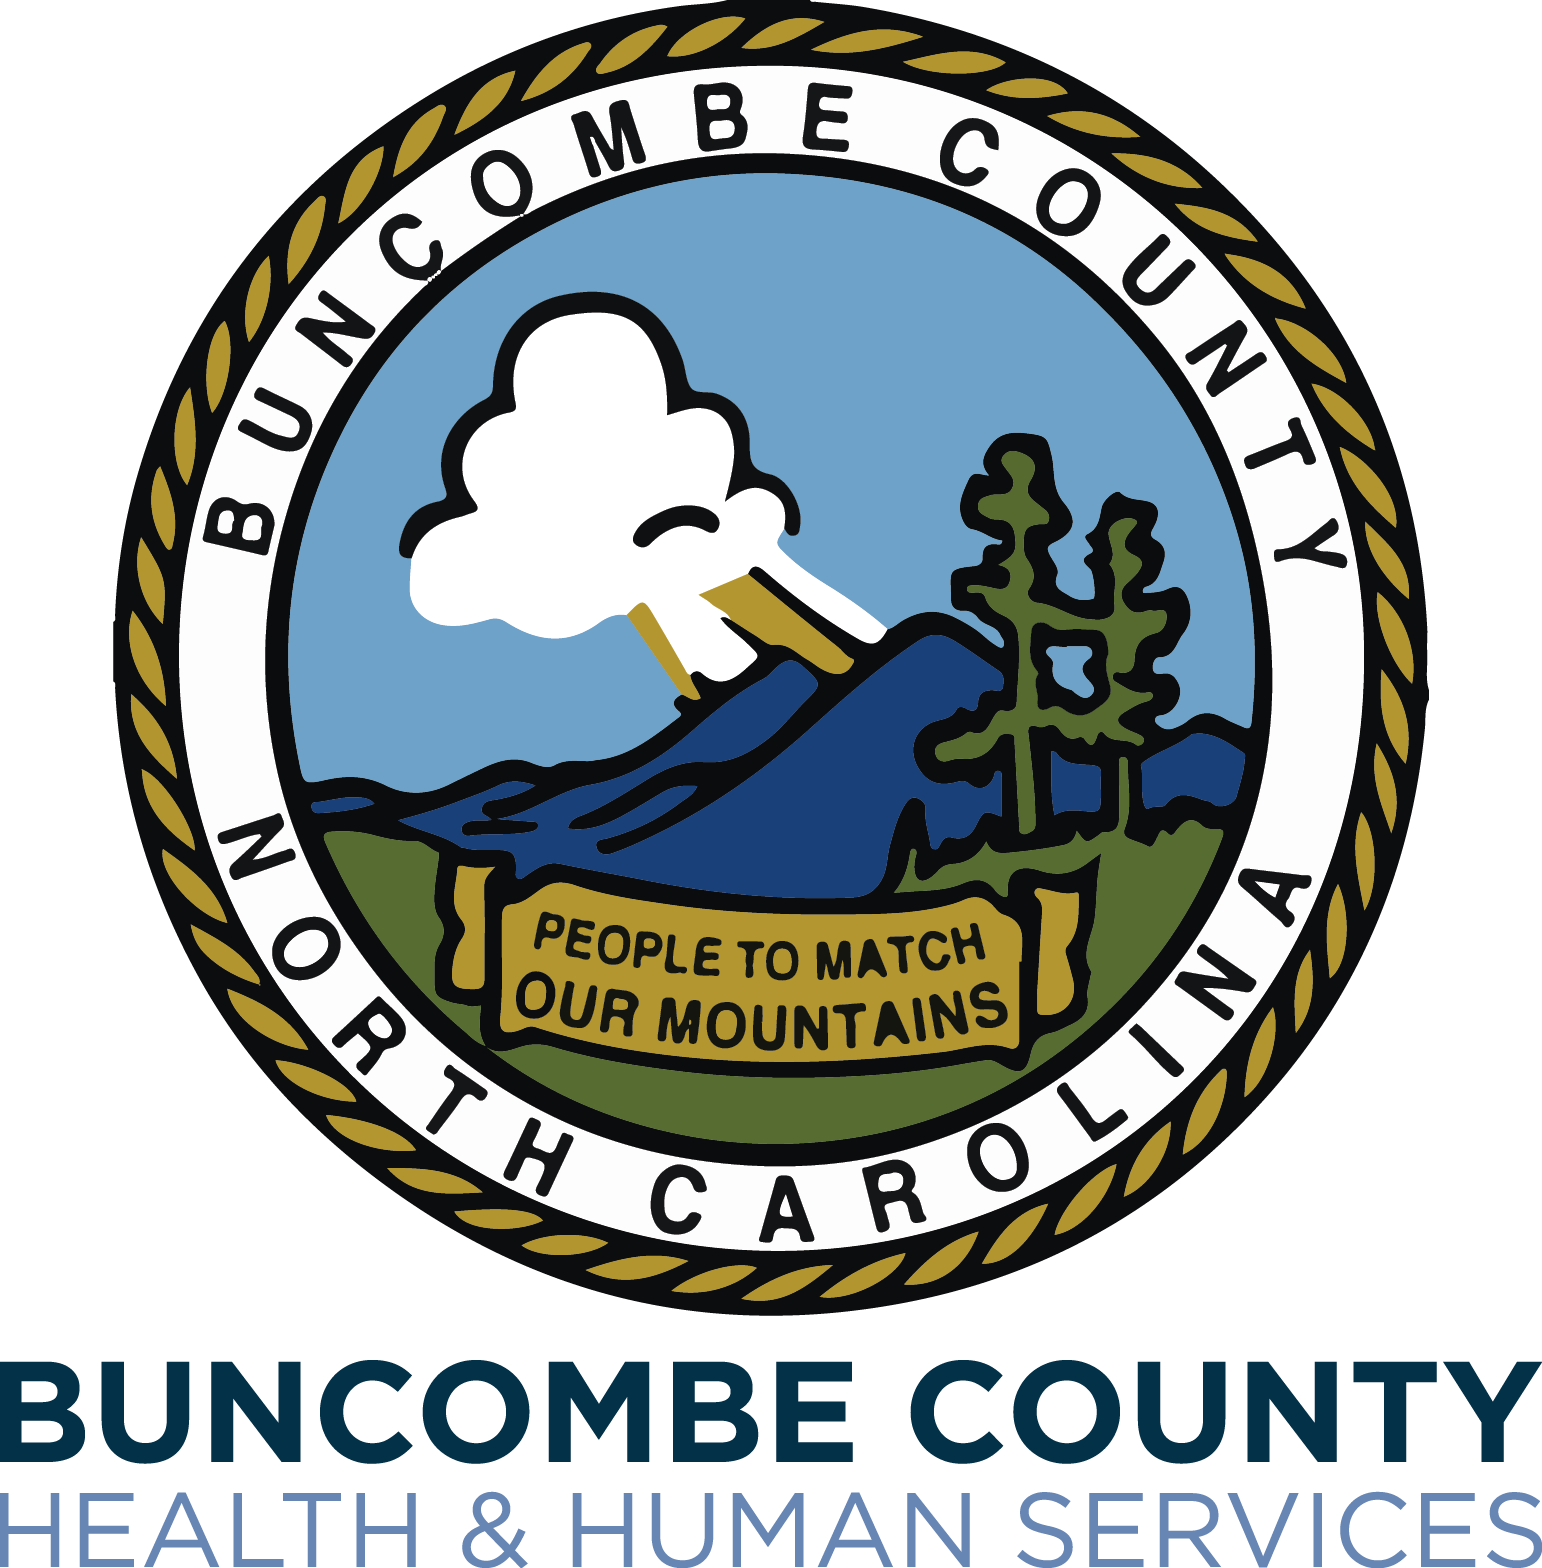 Buncombe county health services. Human clipart human service